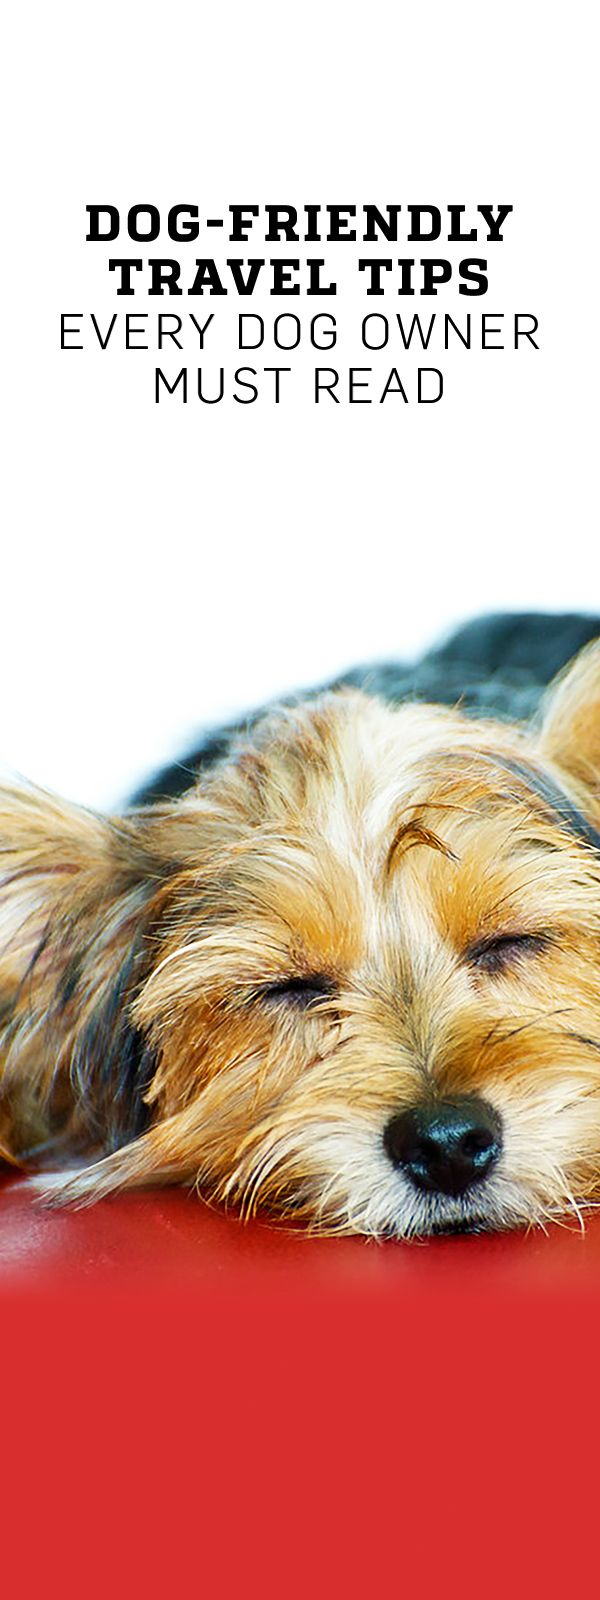 Dog-Friendly Travel Tips for Vacationing with Your Pet